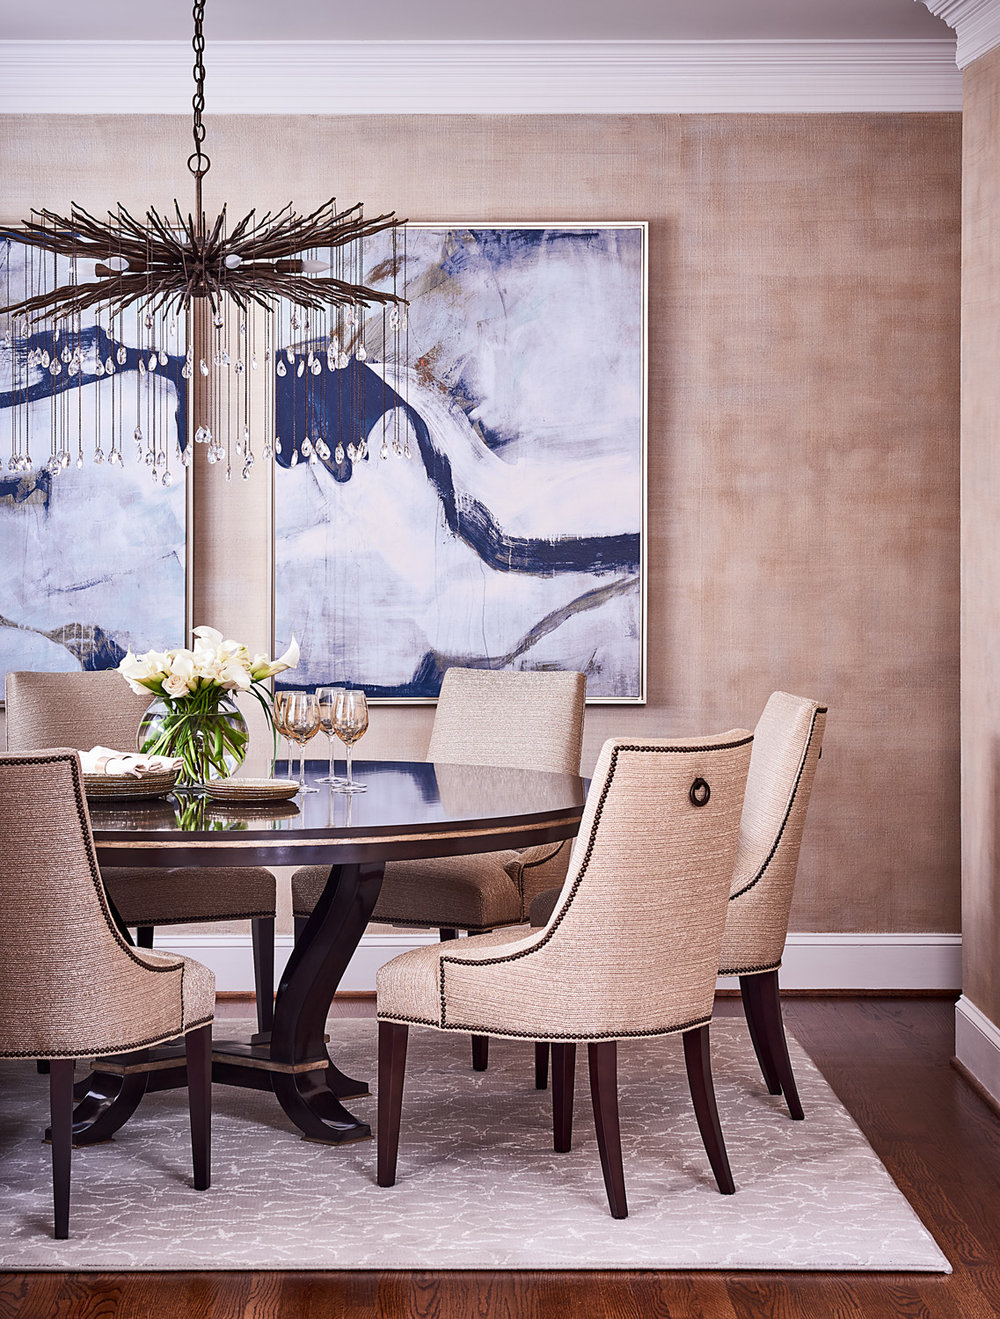 Modern dining room with round wooden table and artwork on wall